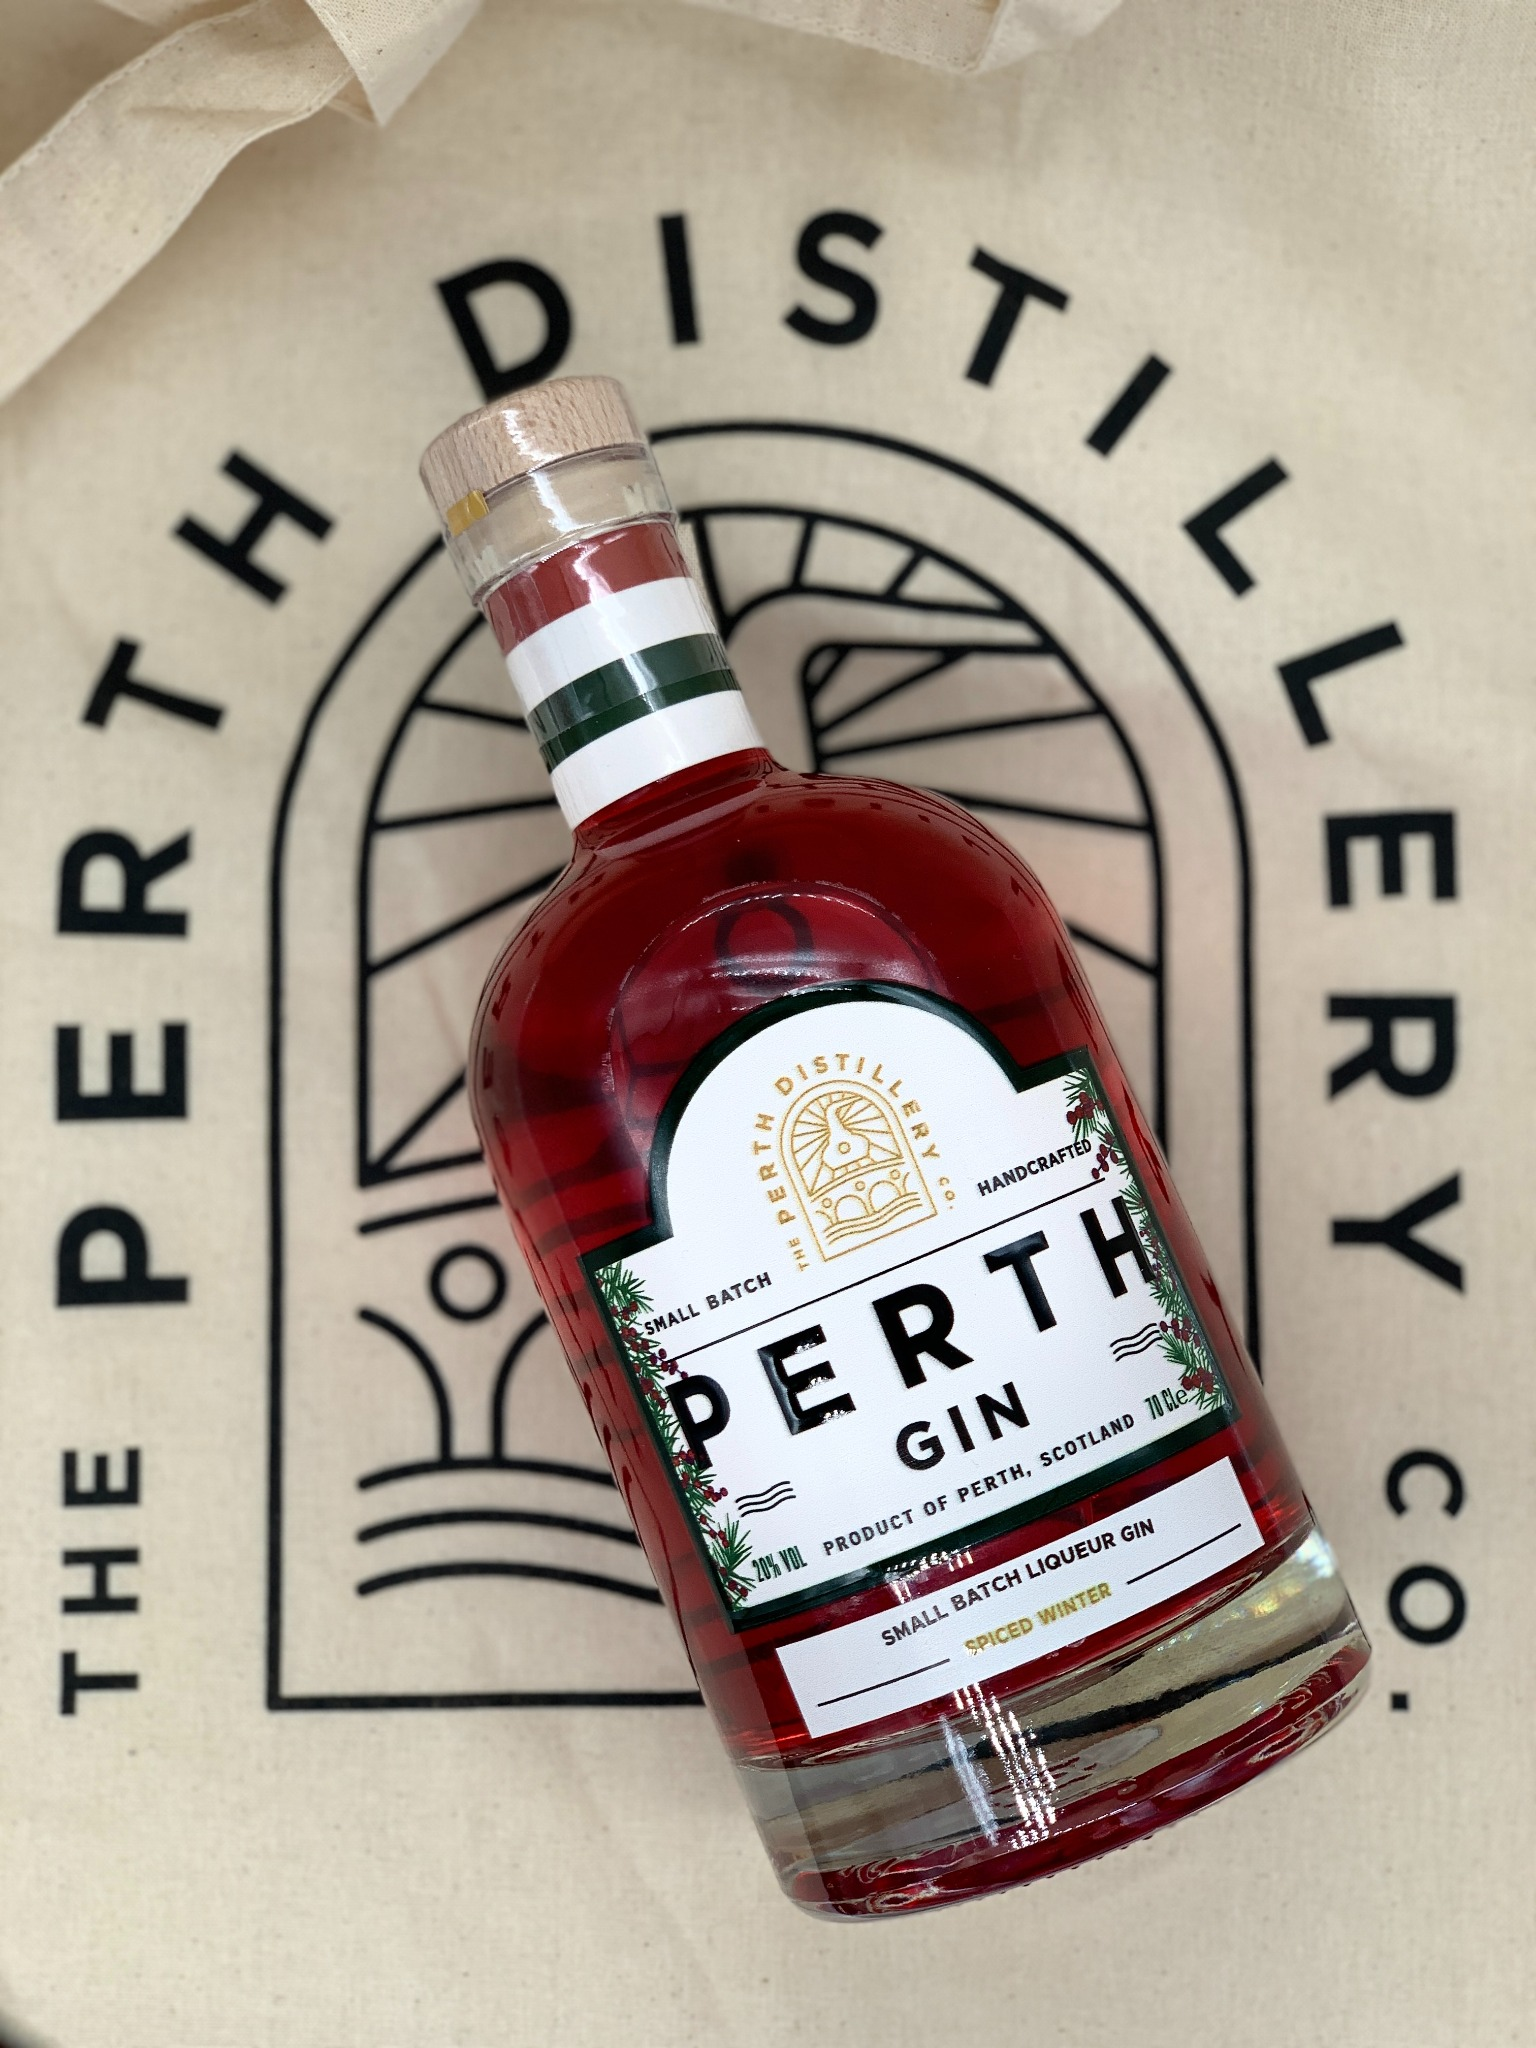 Perth Gin Winter Spiced Gin Liqueur 70cl - MOTHERS DAY Delivery FRIDAY 12th March 2021